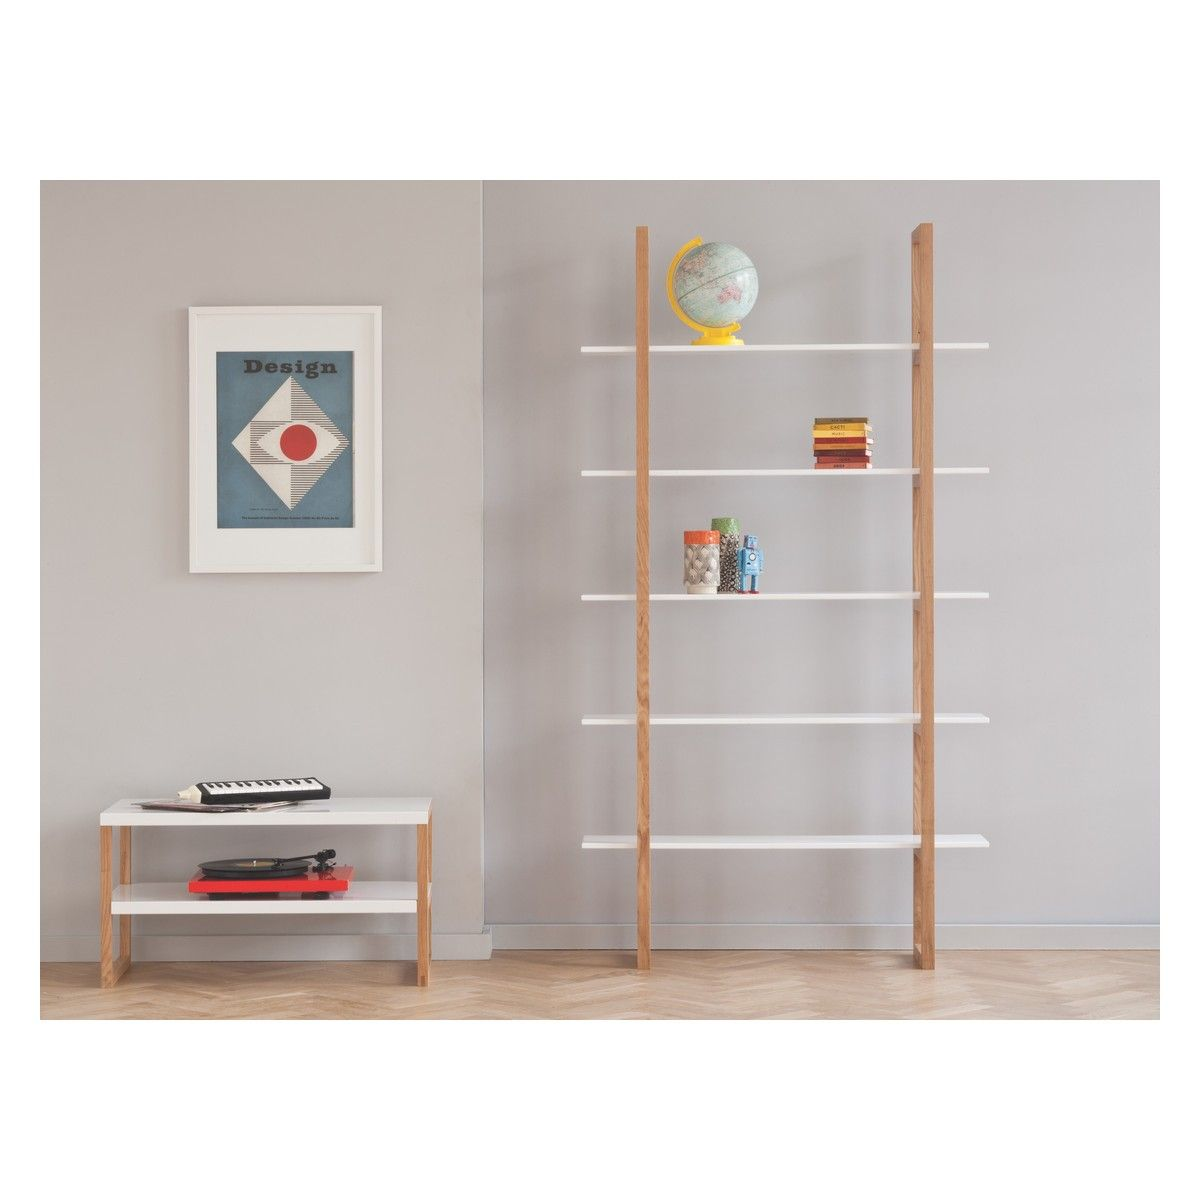 Kitchen Shelves Habitat: Oak Shelving Unit, 5 Shelf Bookcase